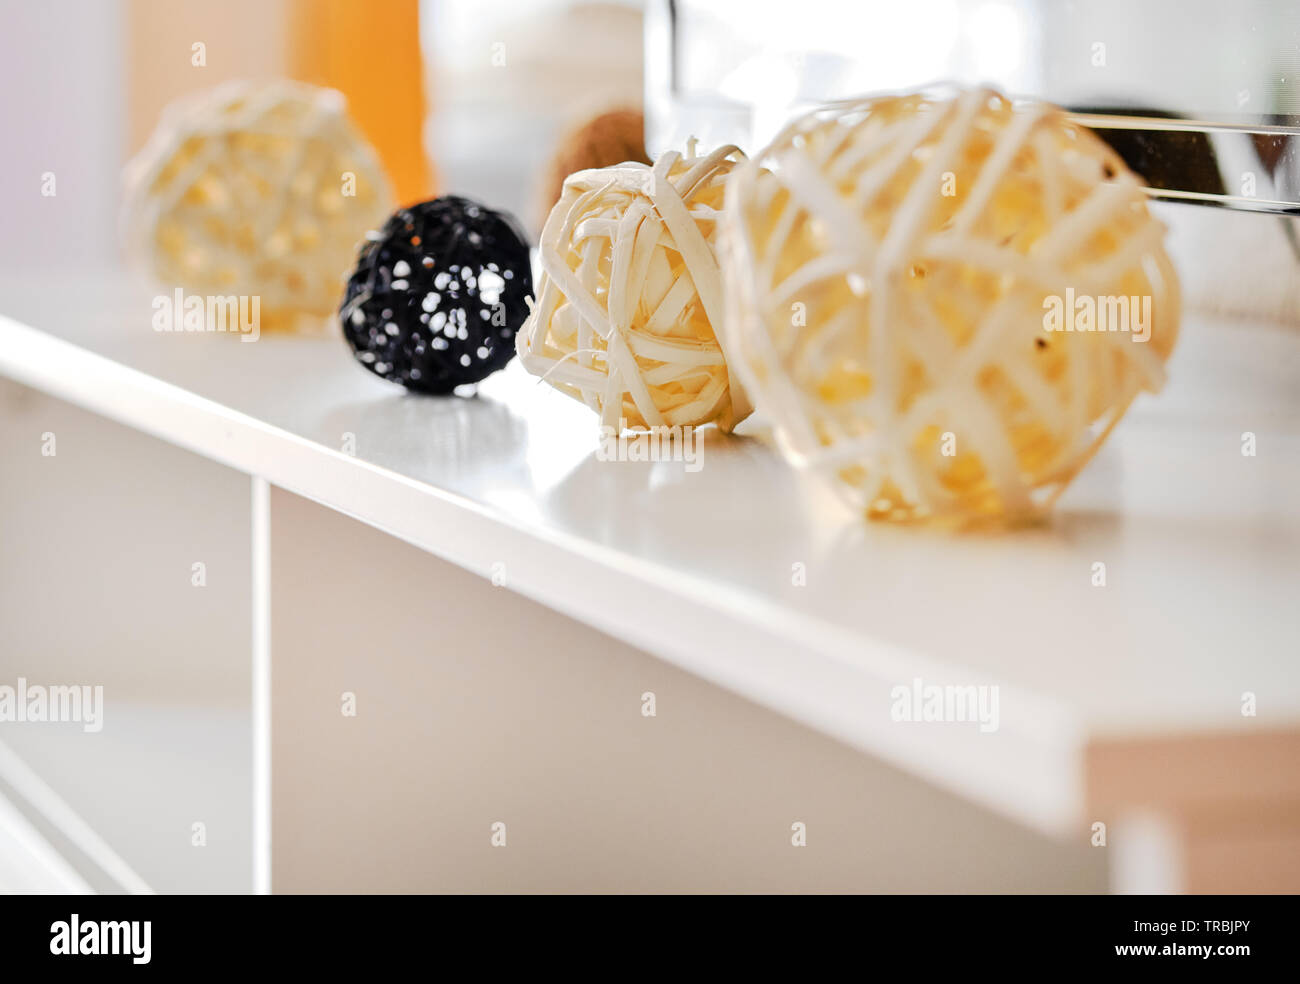 Decorative yellow and black different shapes balls, wicker from natural materials on a white table inside of living room, at home, close up image, no - Stock Image